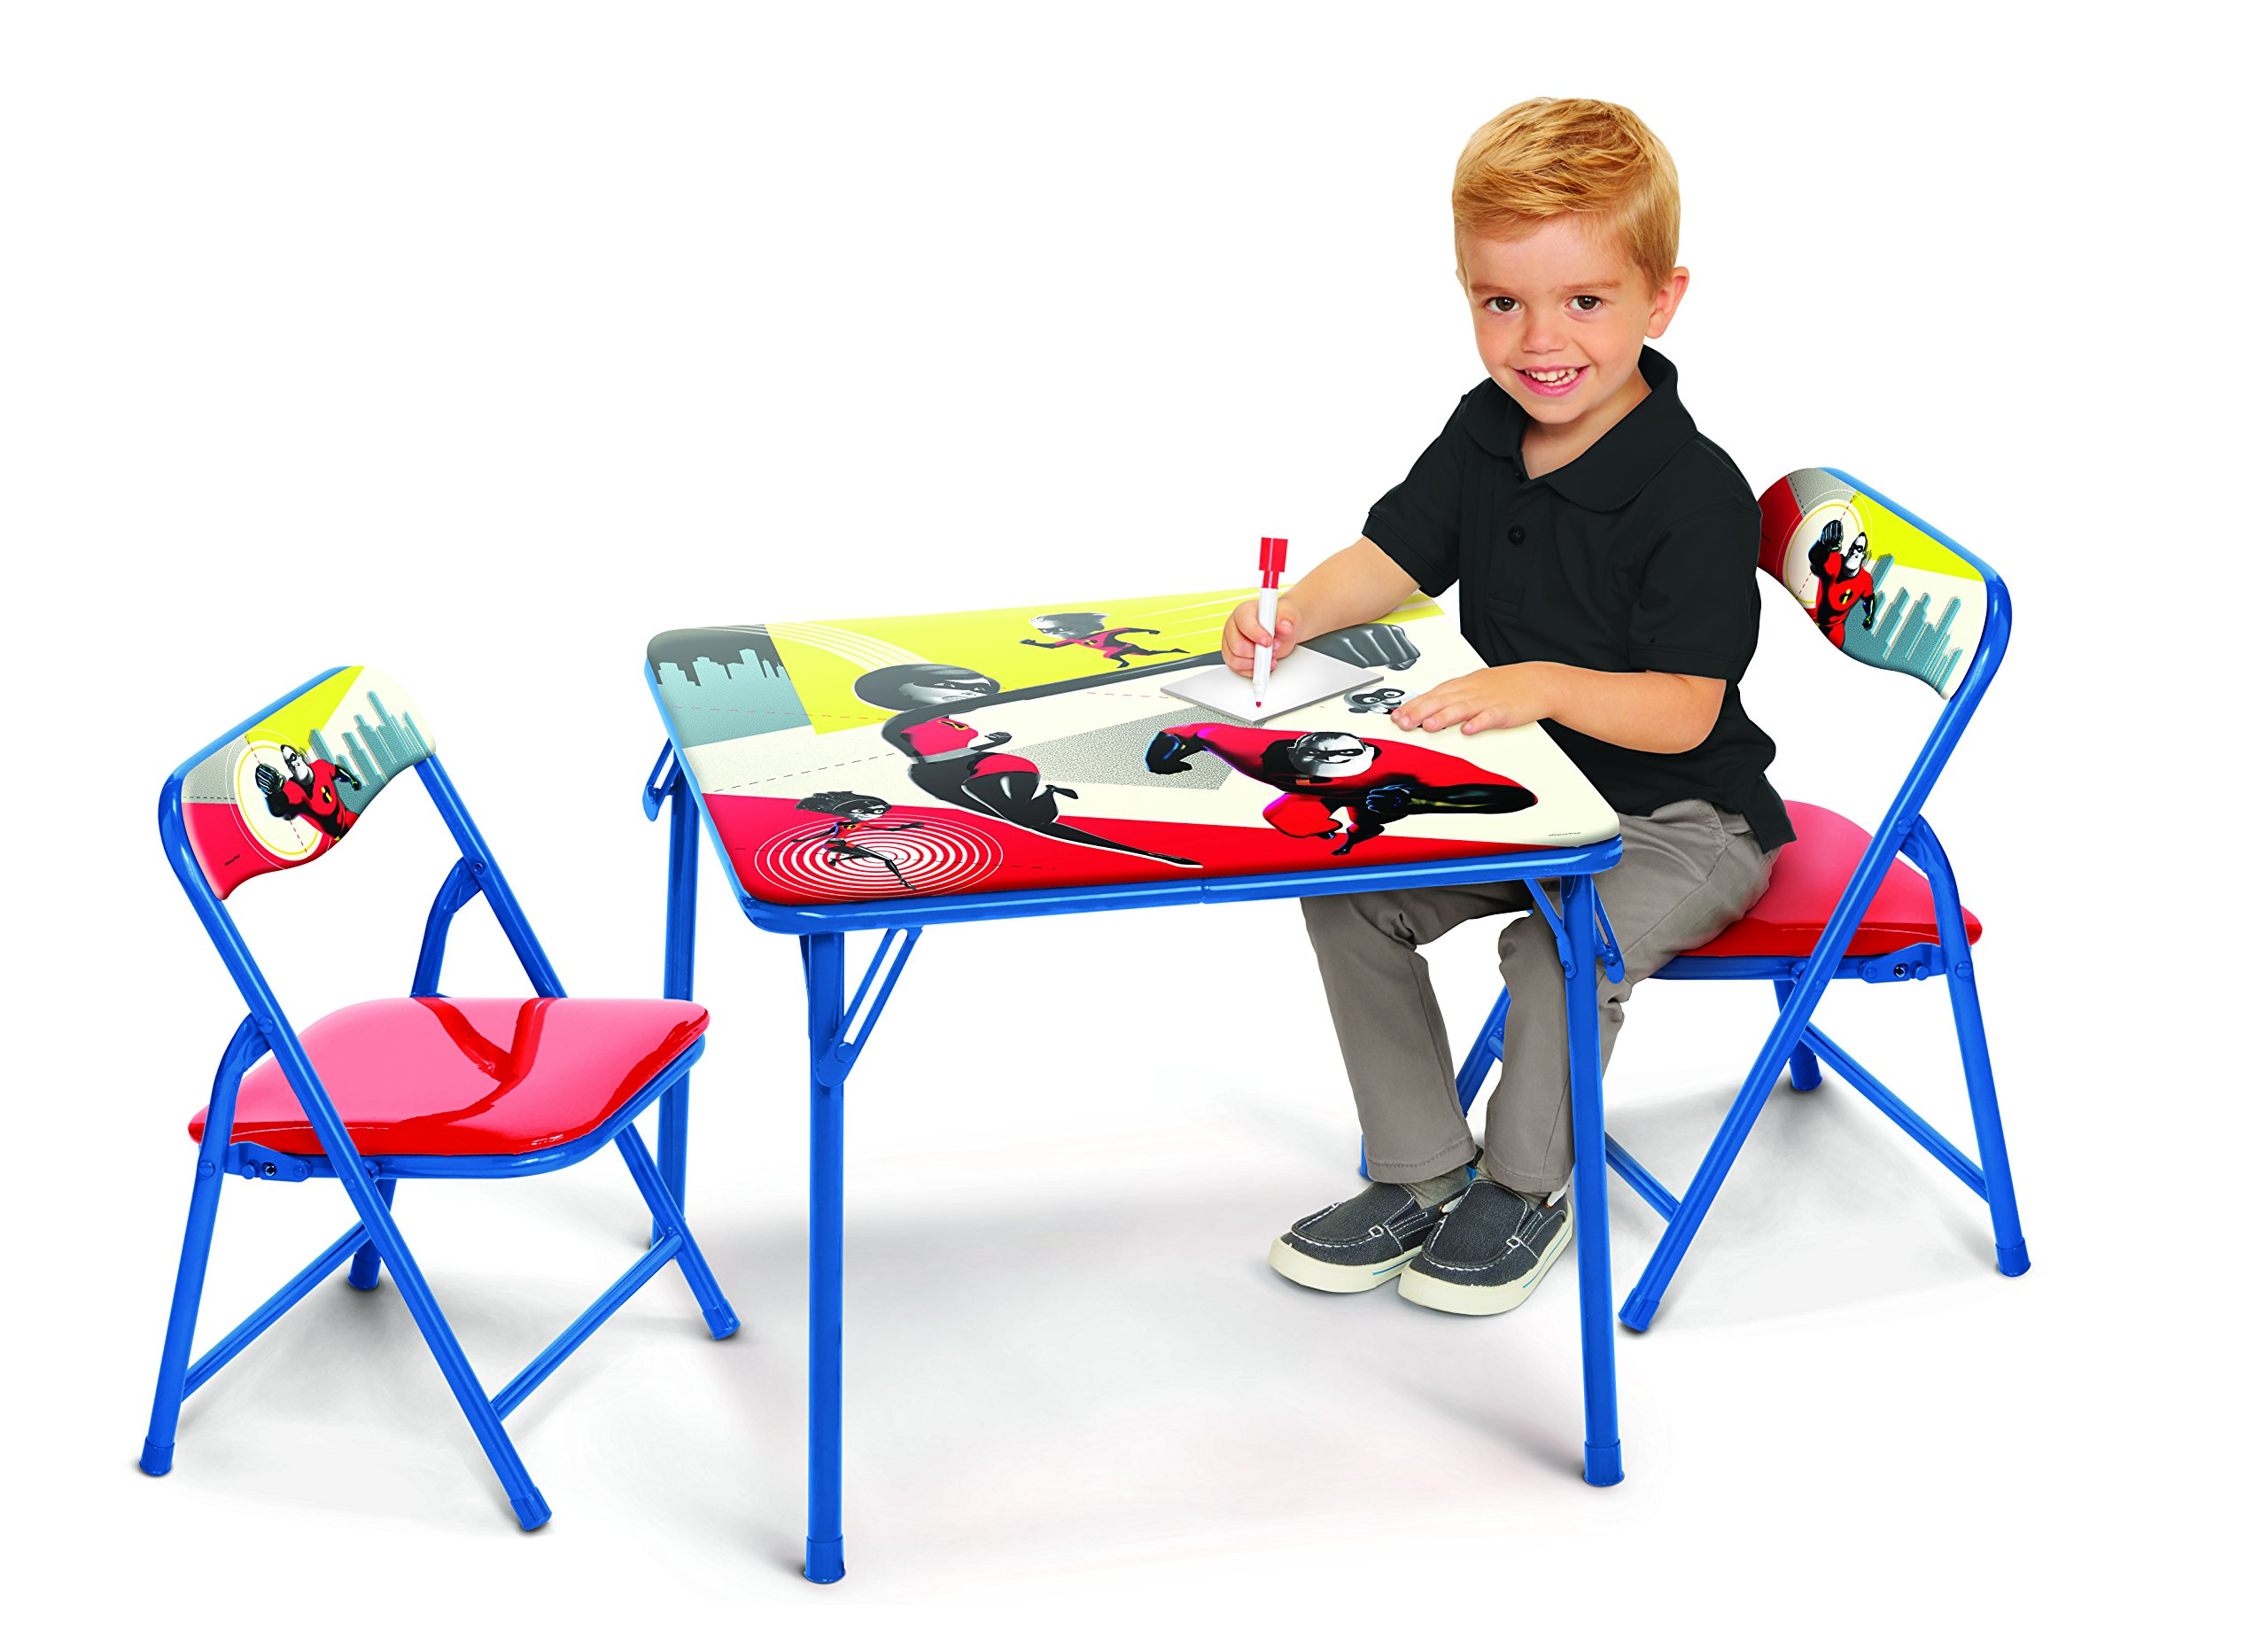 The Incredibles 2 New Disney's Activity Table Set with Two Chairs by The Incredibles 2